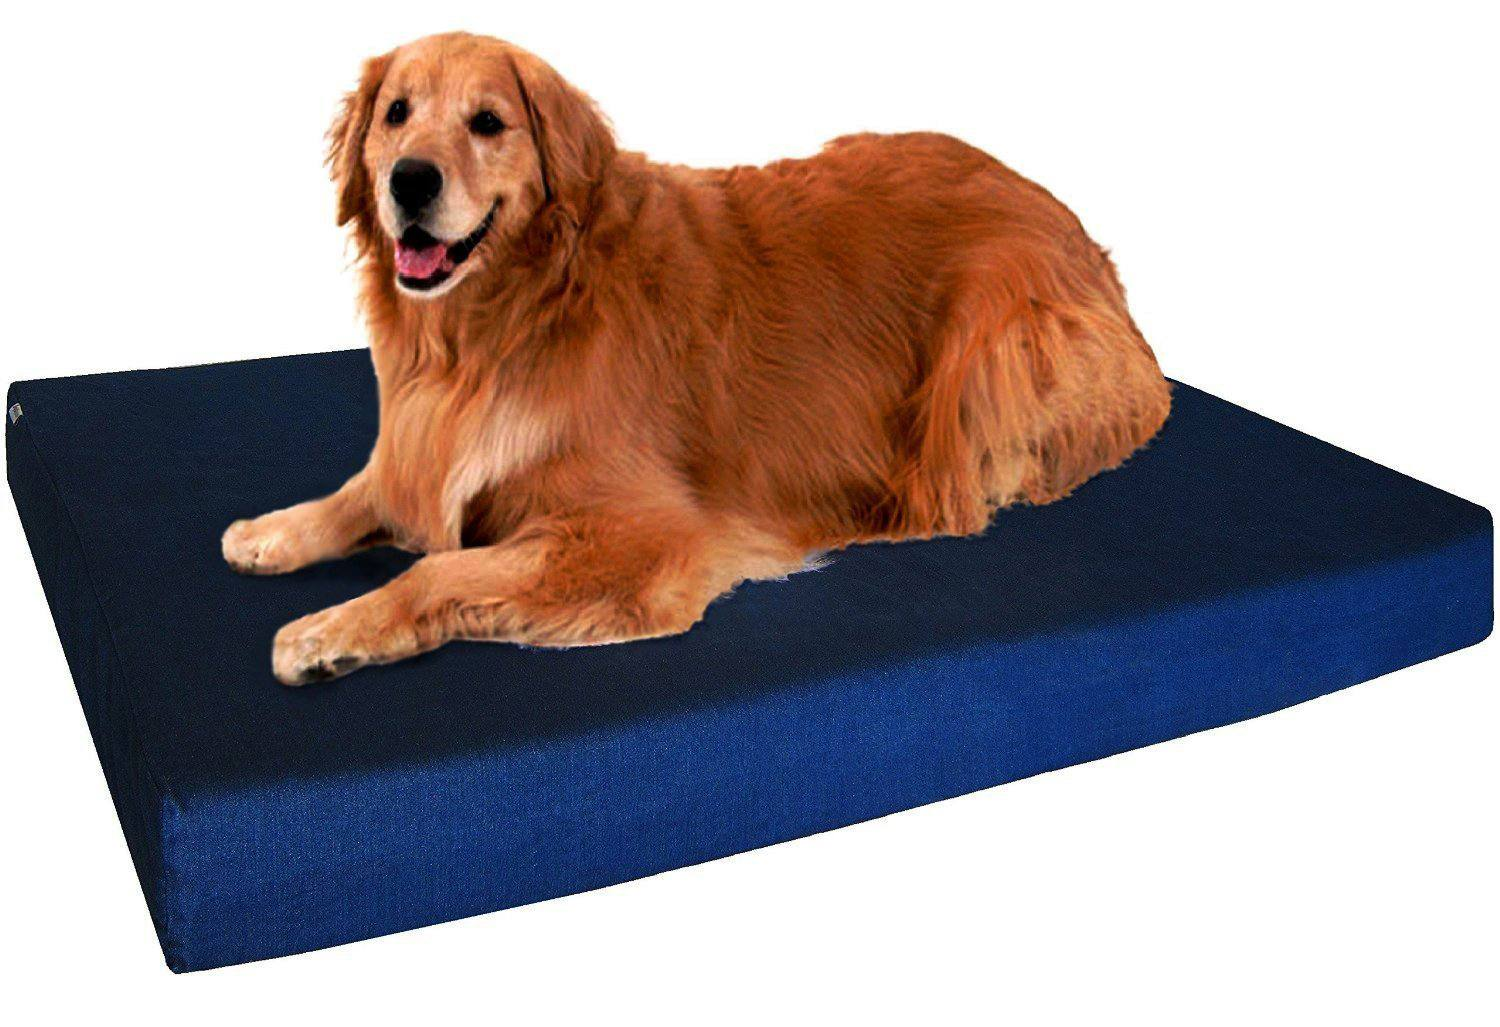 10 best kinds of dog beds for your pooch